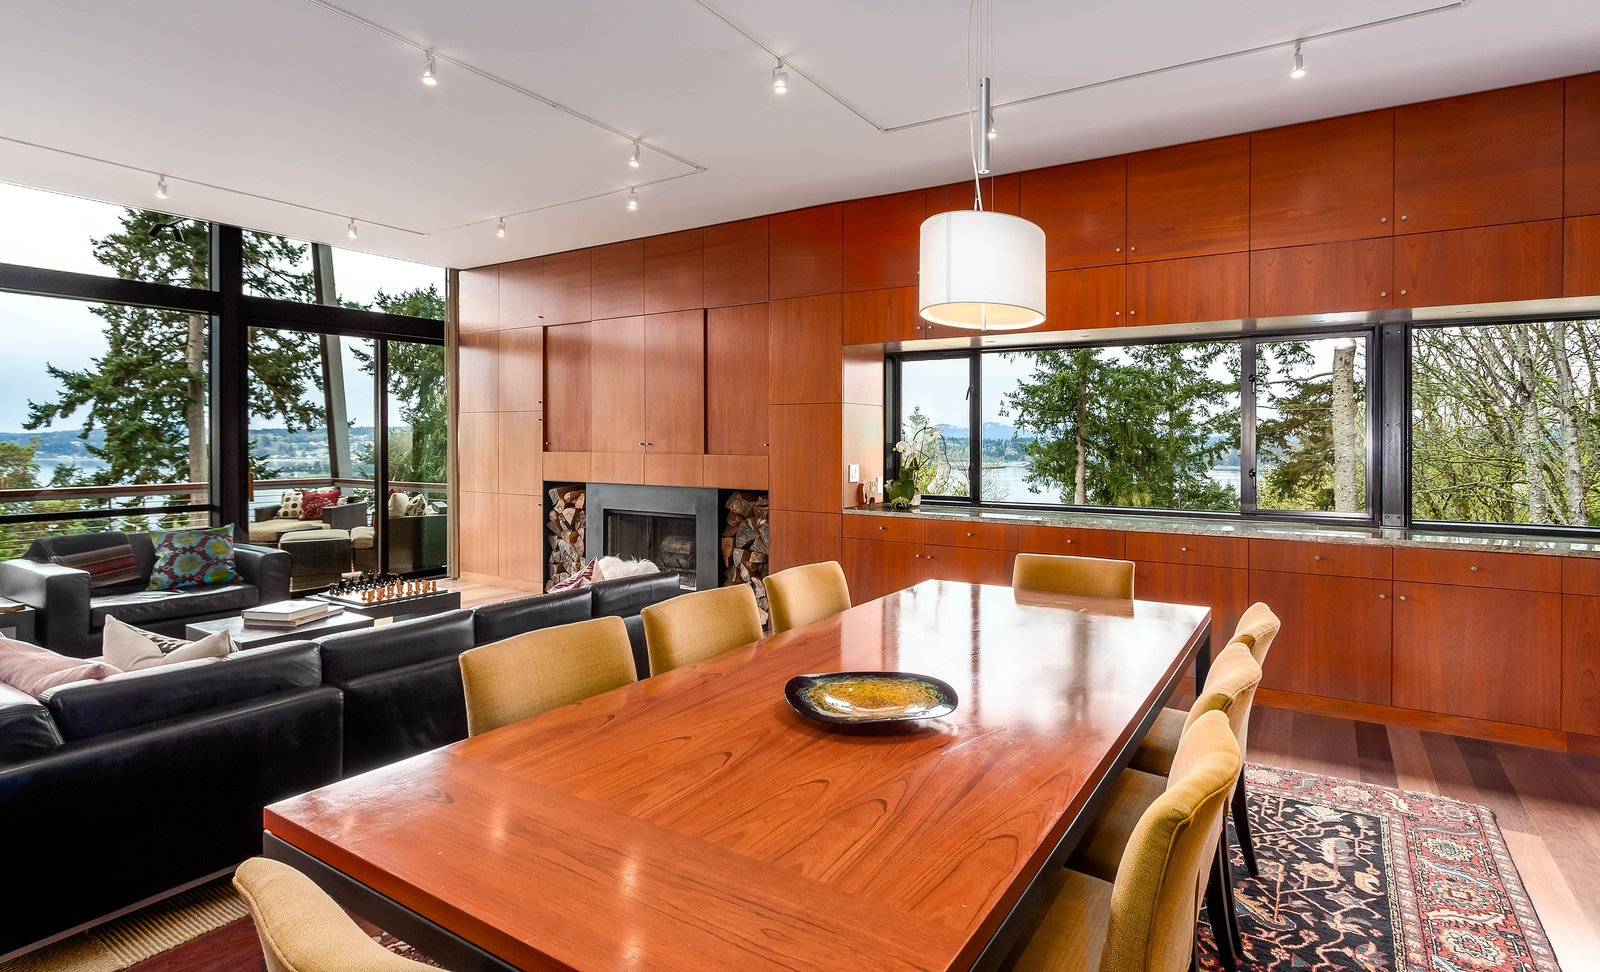 Dining Room The rectilinear floor plan places all of the living spaces in a row. The walls are paneled in rich Brazilian cherry wood, and they house ample built-in storage.  Photo 4 of 8 in A Cantilevered Bainbridge Island Home Set Atop a Historic Bunker Lists For $1.73M from Stunning Steel-Frame Construction Cantilevered atop Historic Bunker For Sale